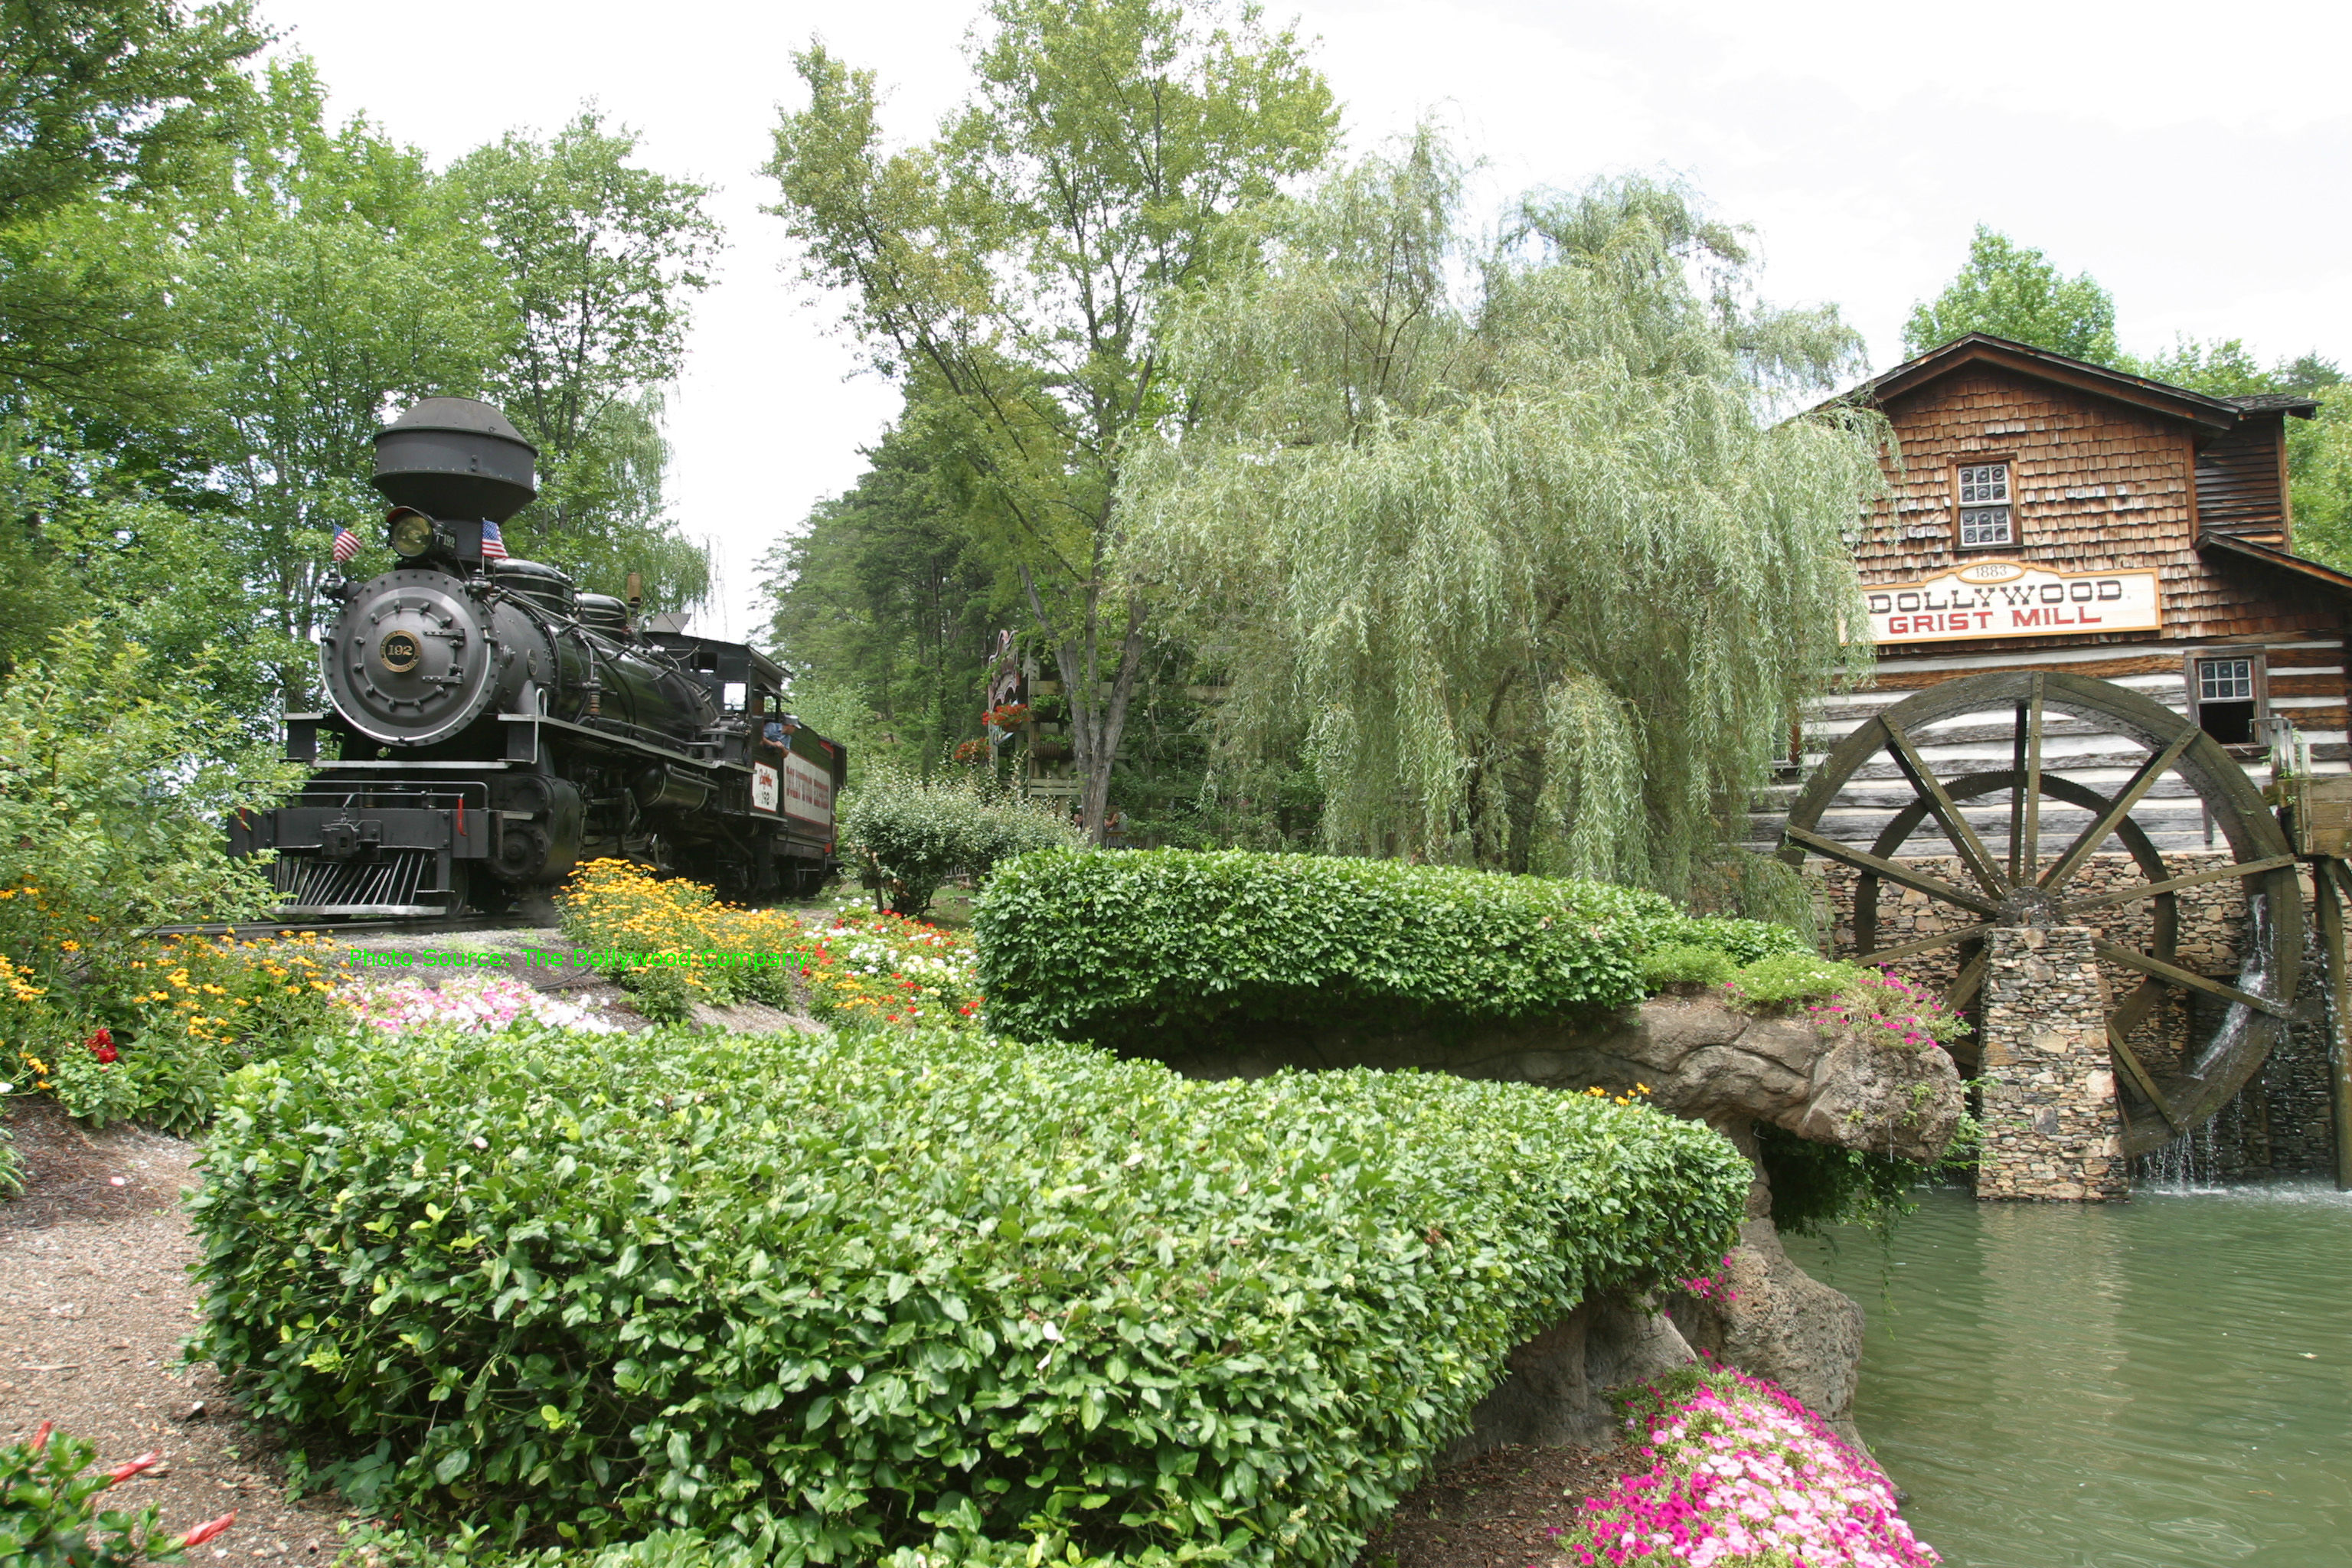 Dollywood Train; Dream More, Dollywood, and A.D.D